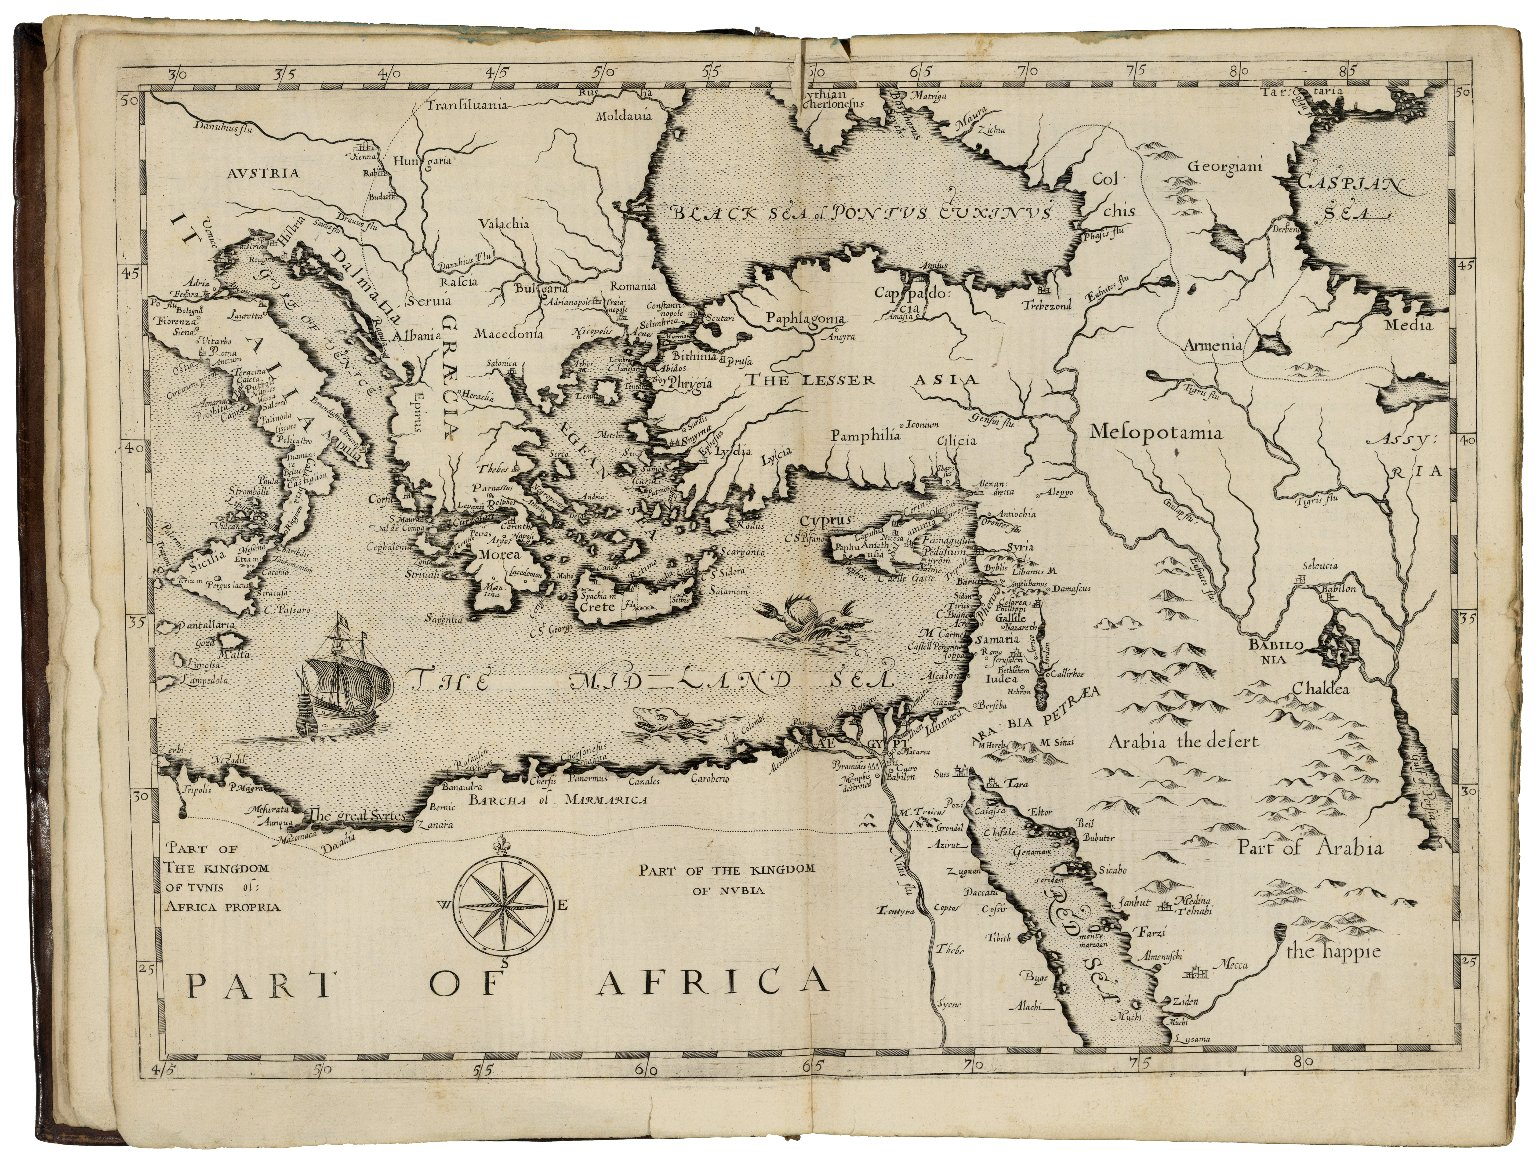 A relation of a iourney begun an: Dom: 1610. Foure bookes. Containing a description of the Turkish Empire, of Ægypt, of the Holy Land, of the remote parts of Italy, and ilands adioyning.